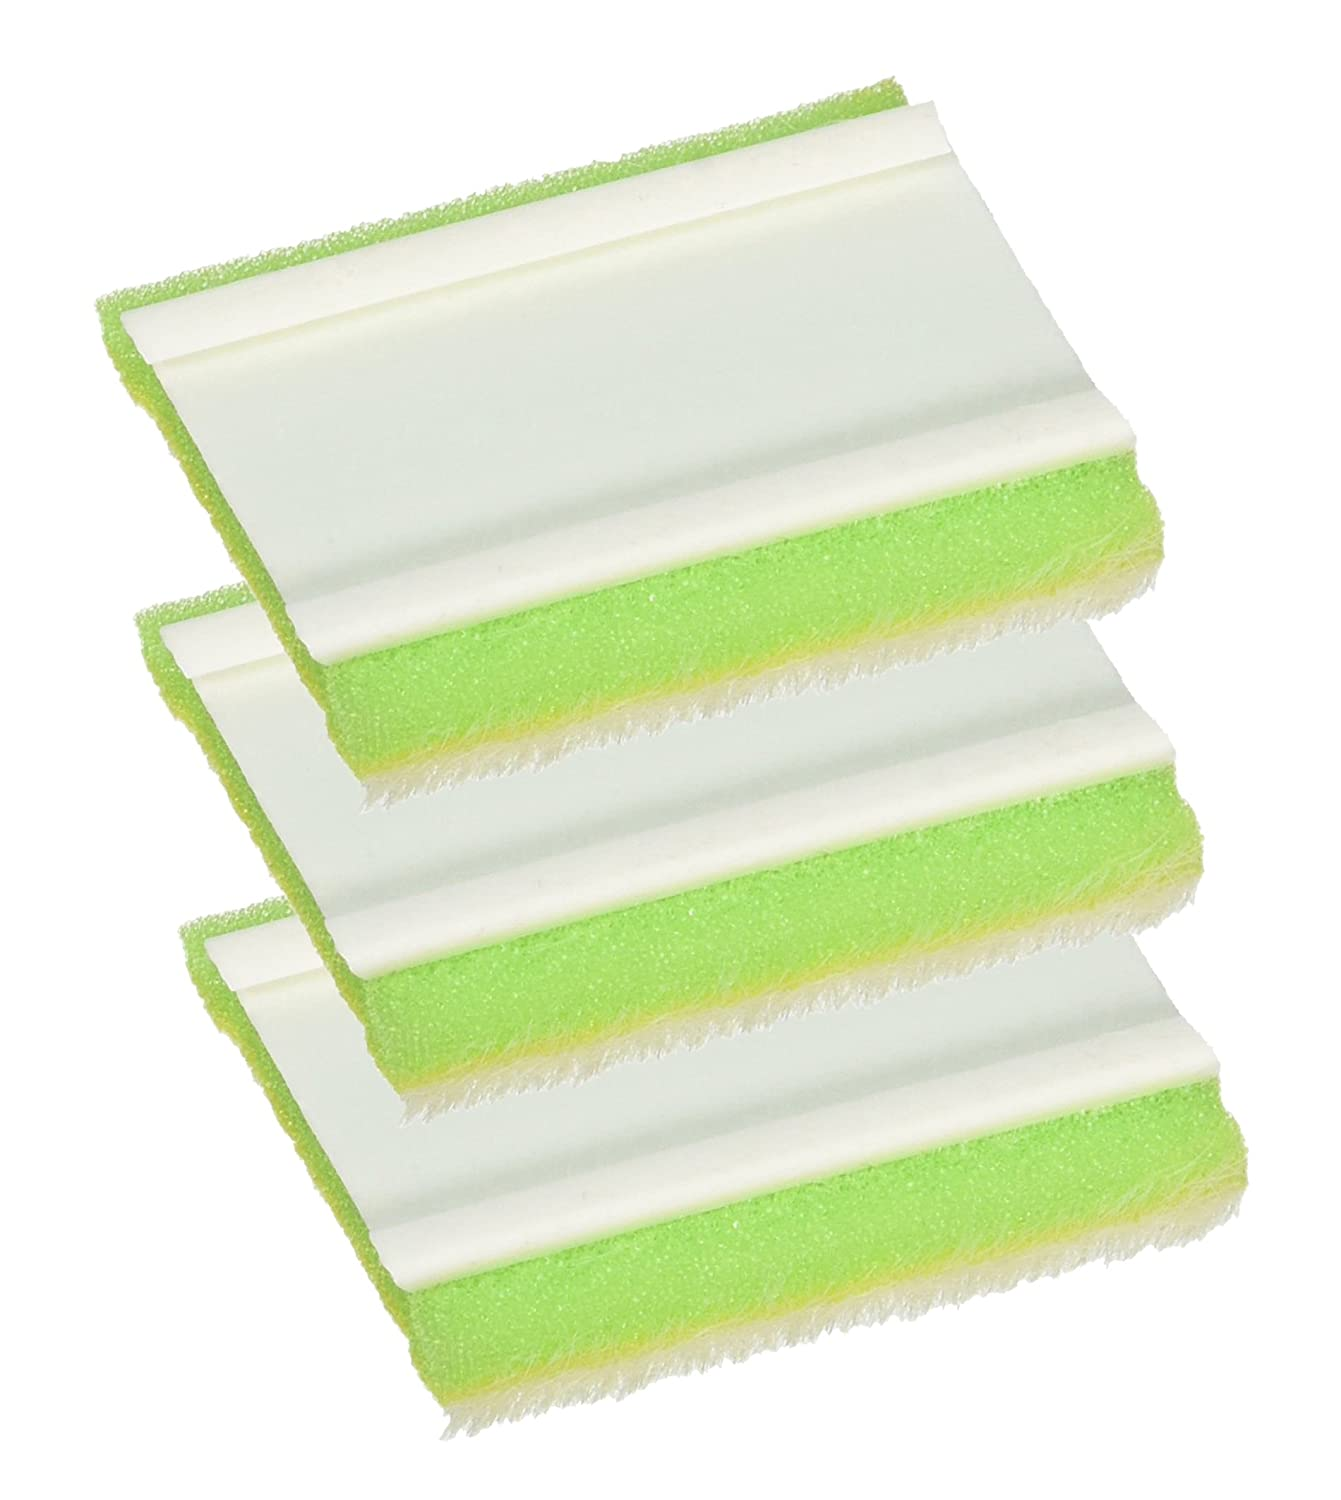 Amazon.com: Shur-Line 1540 Trim and Touch-Up Pad Refill, 3-Pack ...